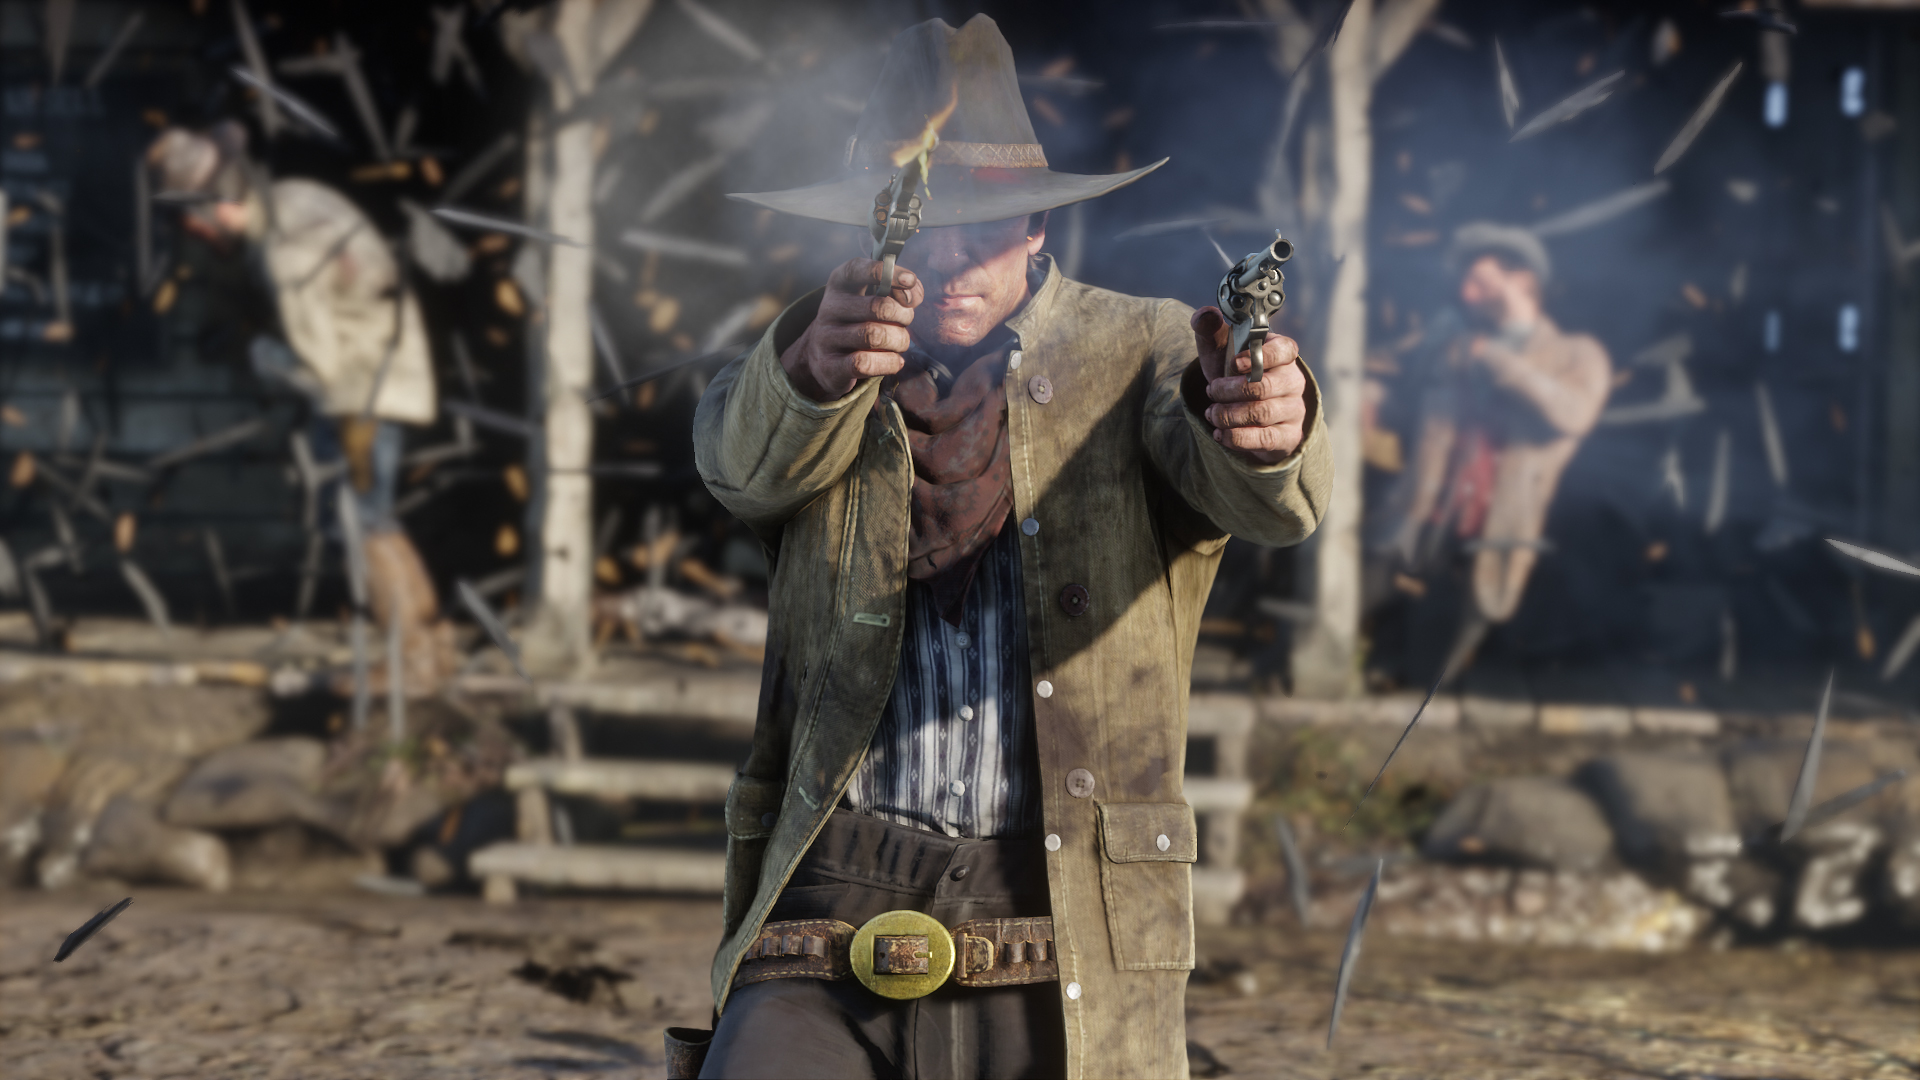 Rockstars 'Red Dead Redemption 2' Sells More Games In 8 Days Than Its Predecessor Did In 8 Years